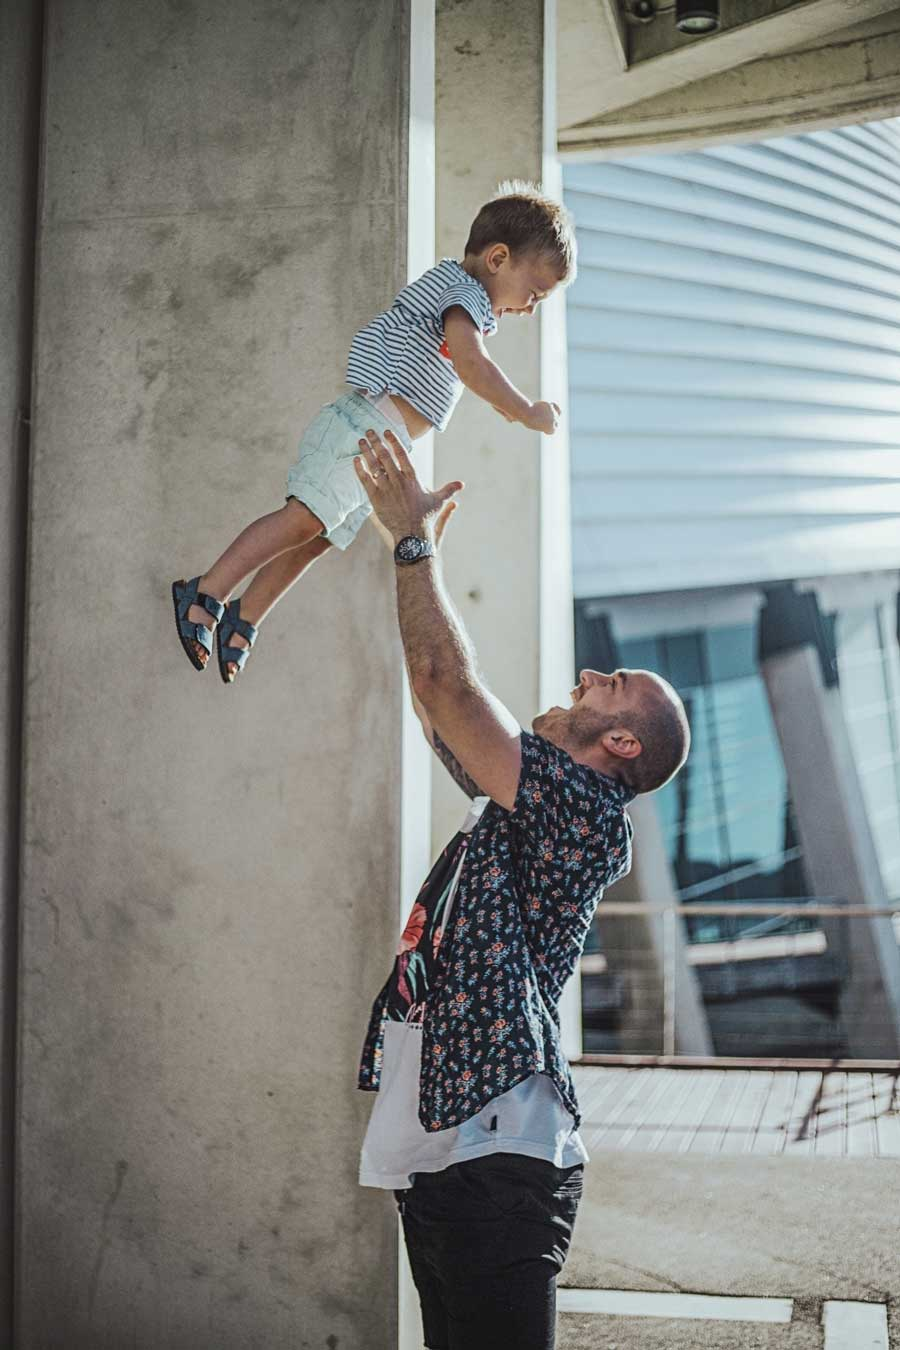 son trusting his dad to throw him up into the air